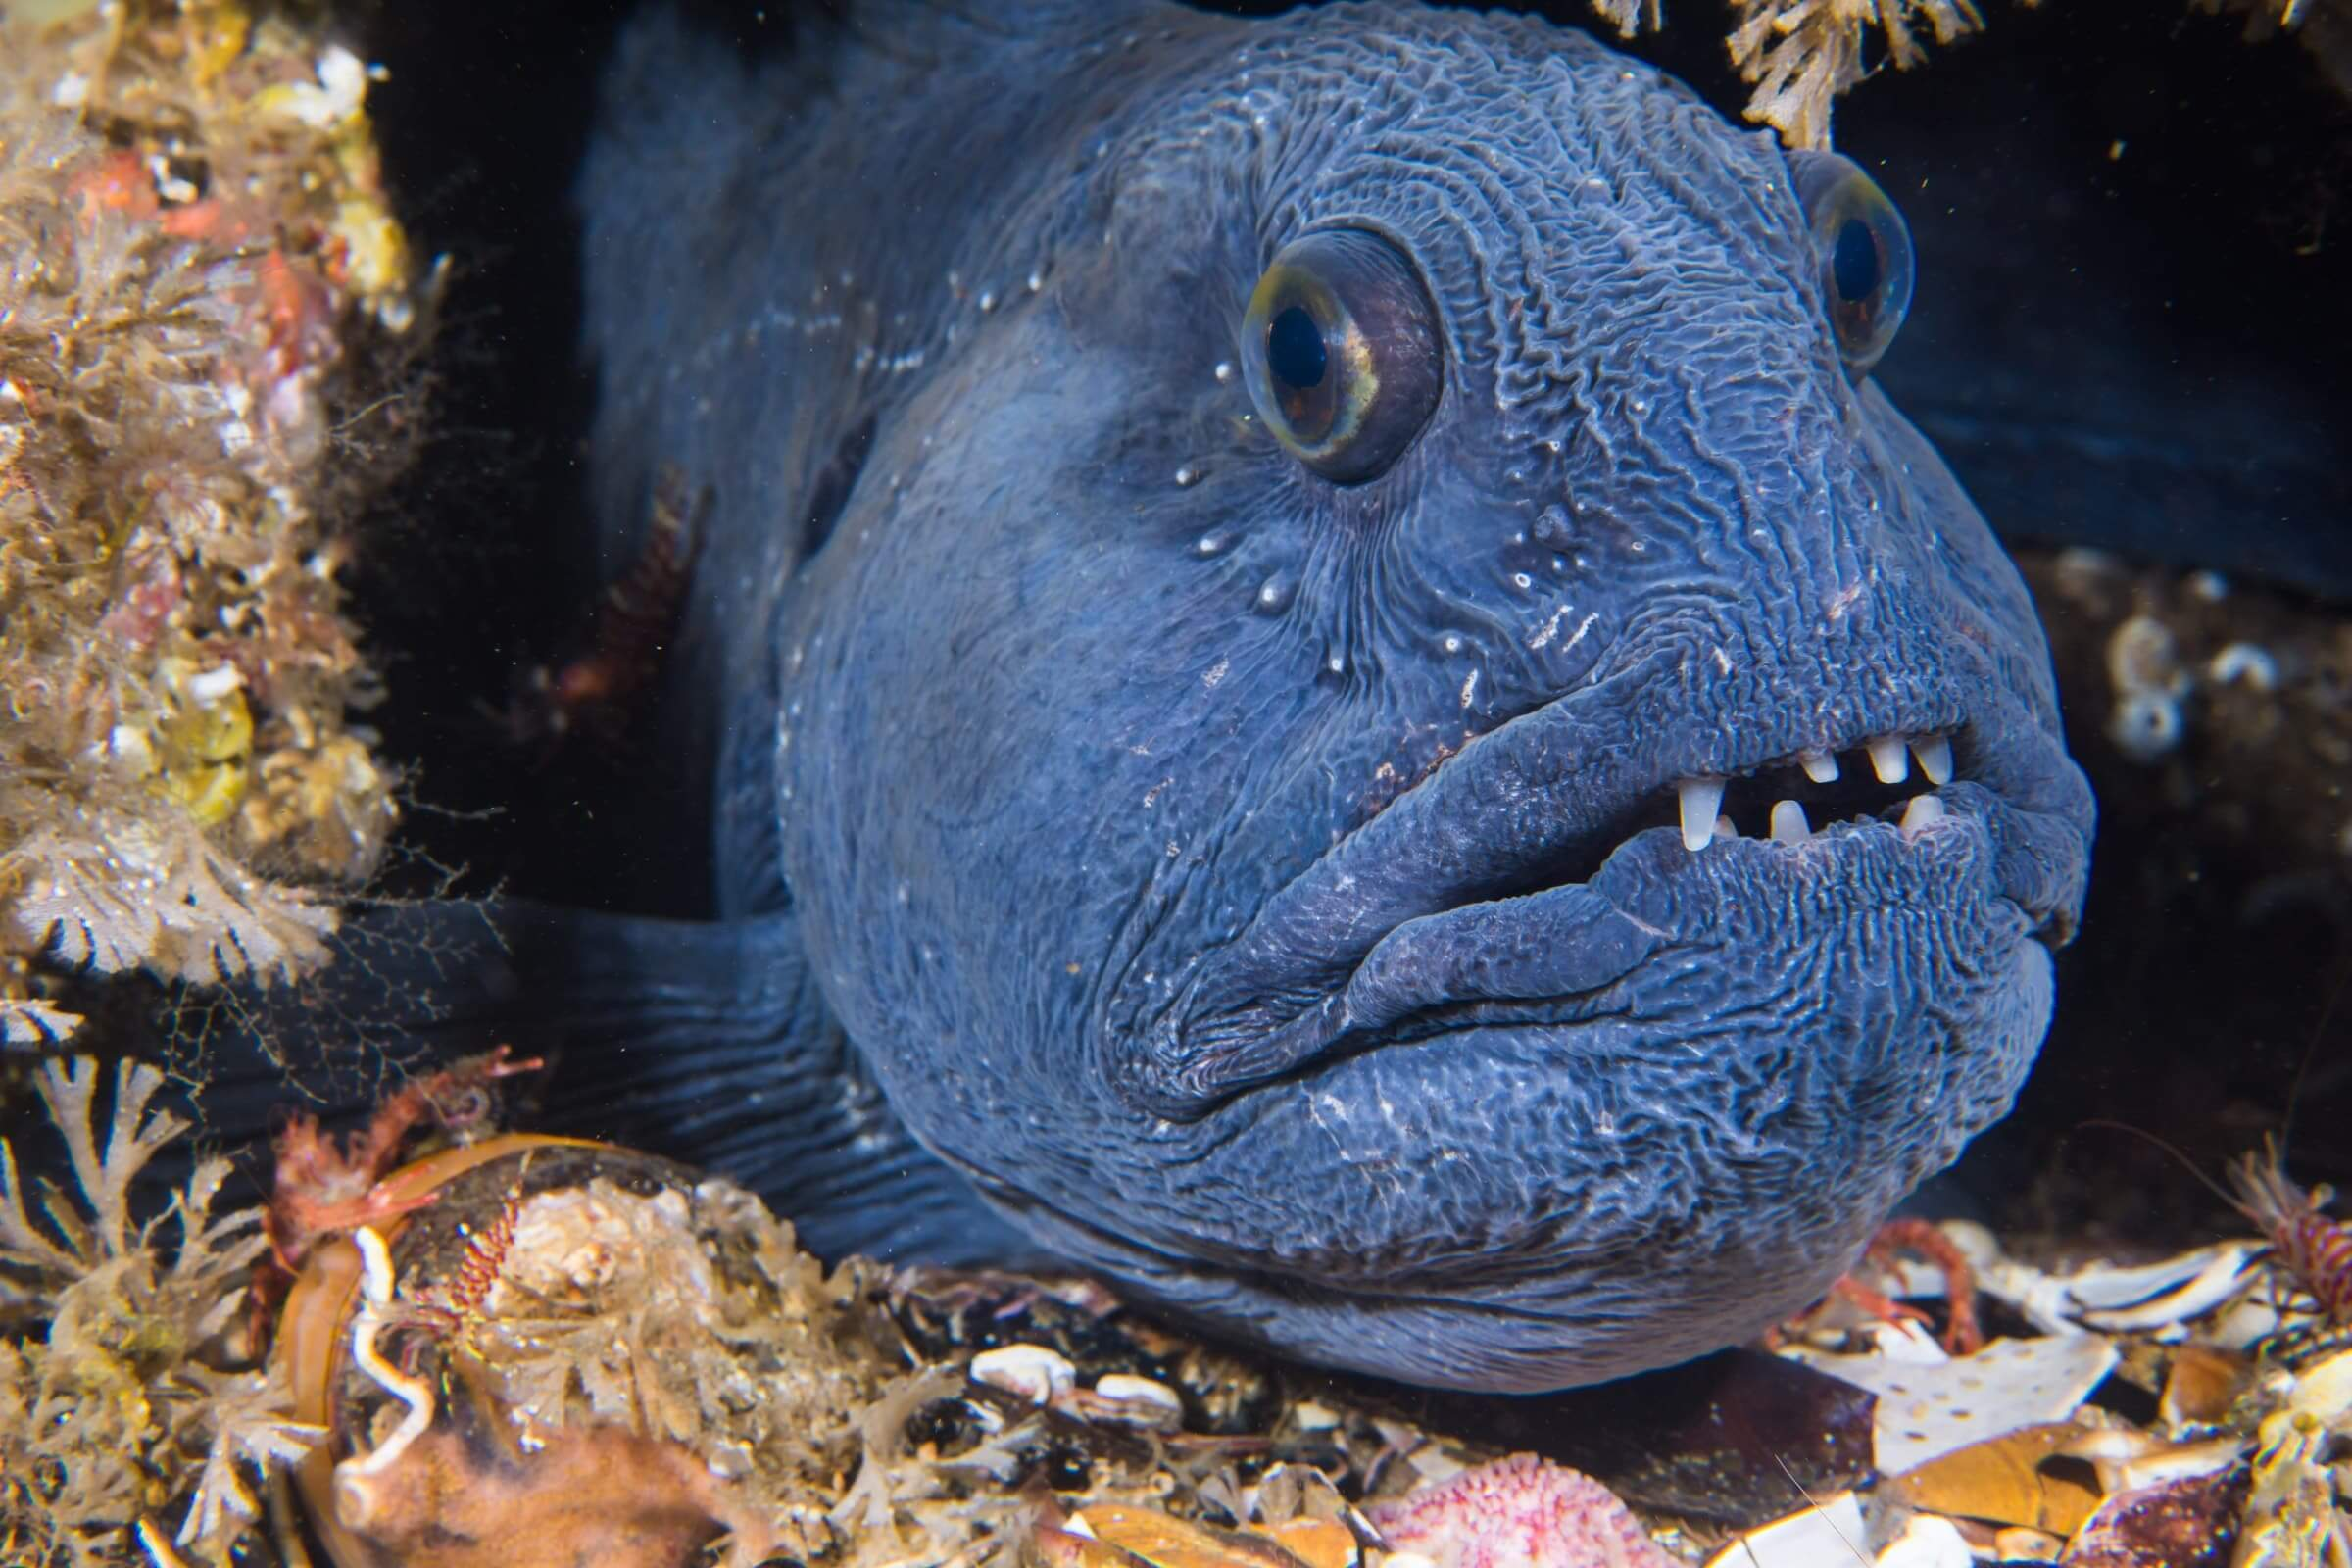 wolffish atlantic spotted and northern. photo by Joern K, Visit Greenland